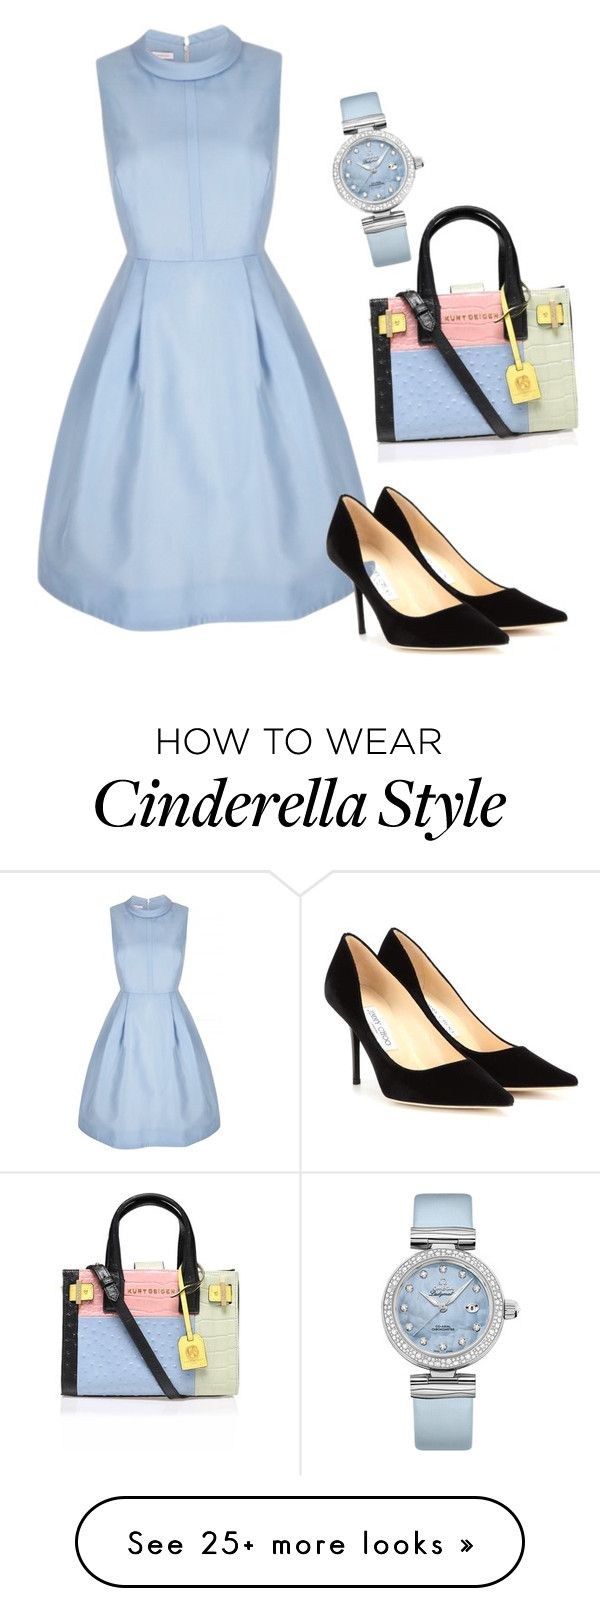 """Untitled #1767"" by ncmilliebear on Polyvore featuring Jimmy Choo, OMEGA, Kurt Geiger, women's clothing, women's fashion, women, female, woman, misses and juniors"